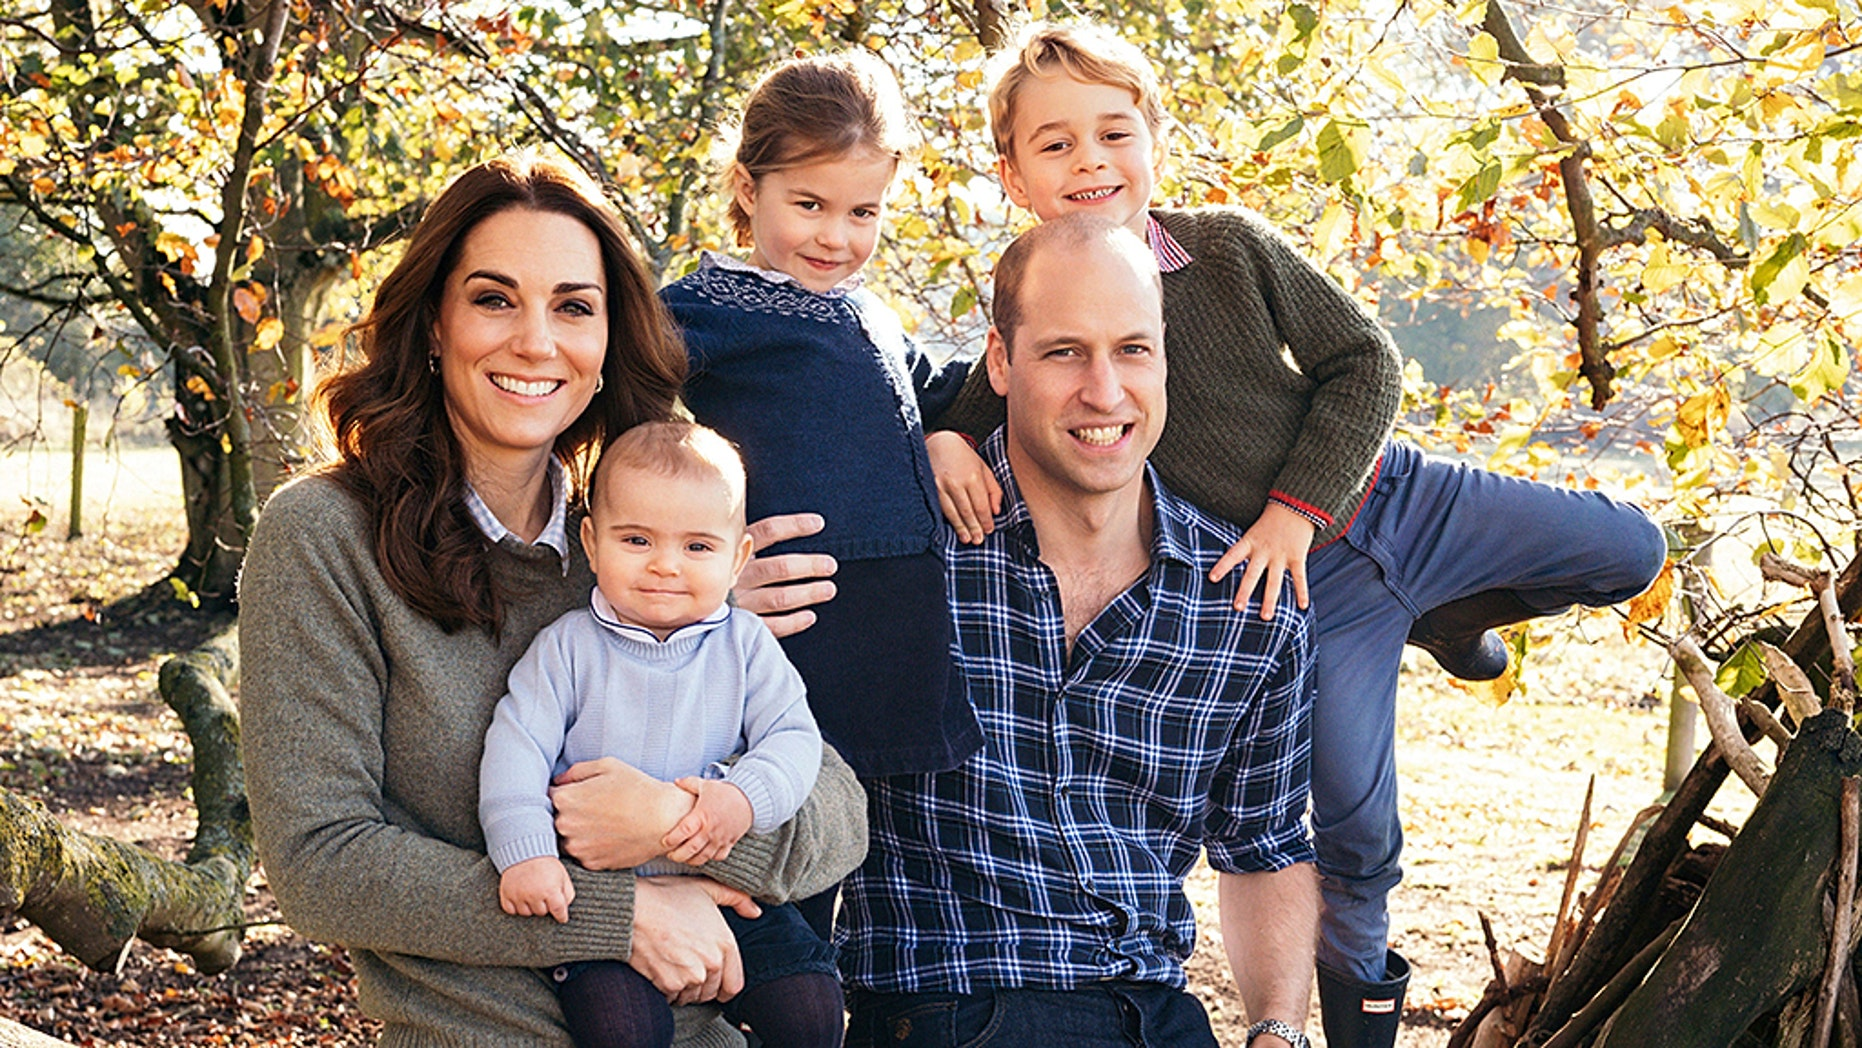 Britain's Prince William and Kate, Duchess of Cambridge with their children Prince George, right, Princess Charlotte, center, and Prince Louis.